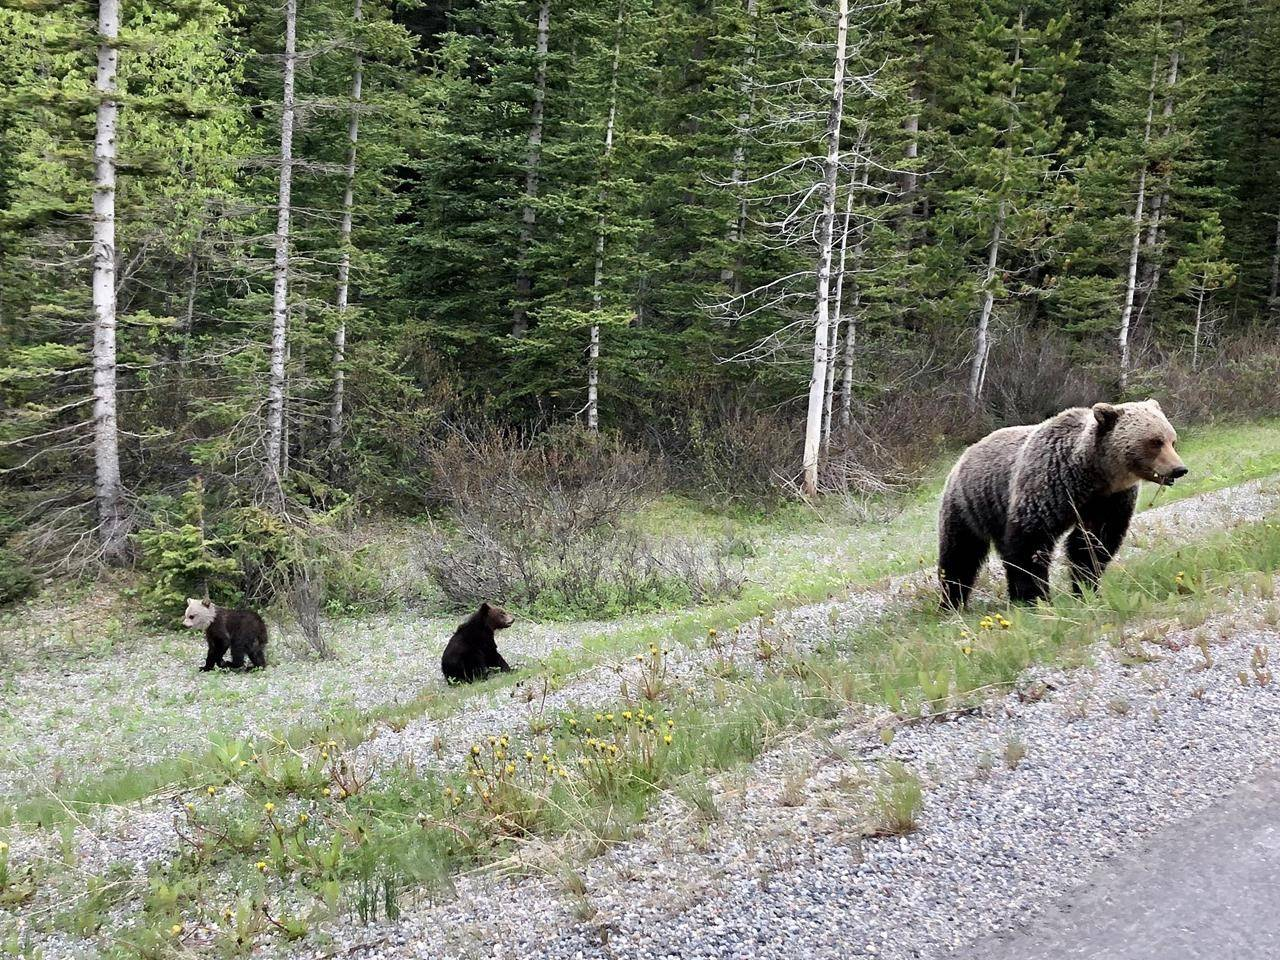 A group of grizzly bears are seen in Banff National Park in this handout image provided by Julia Turner Butterwick. (JULIA TURNER BUTTERWICK/THE CANADIAN PRESS)